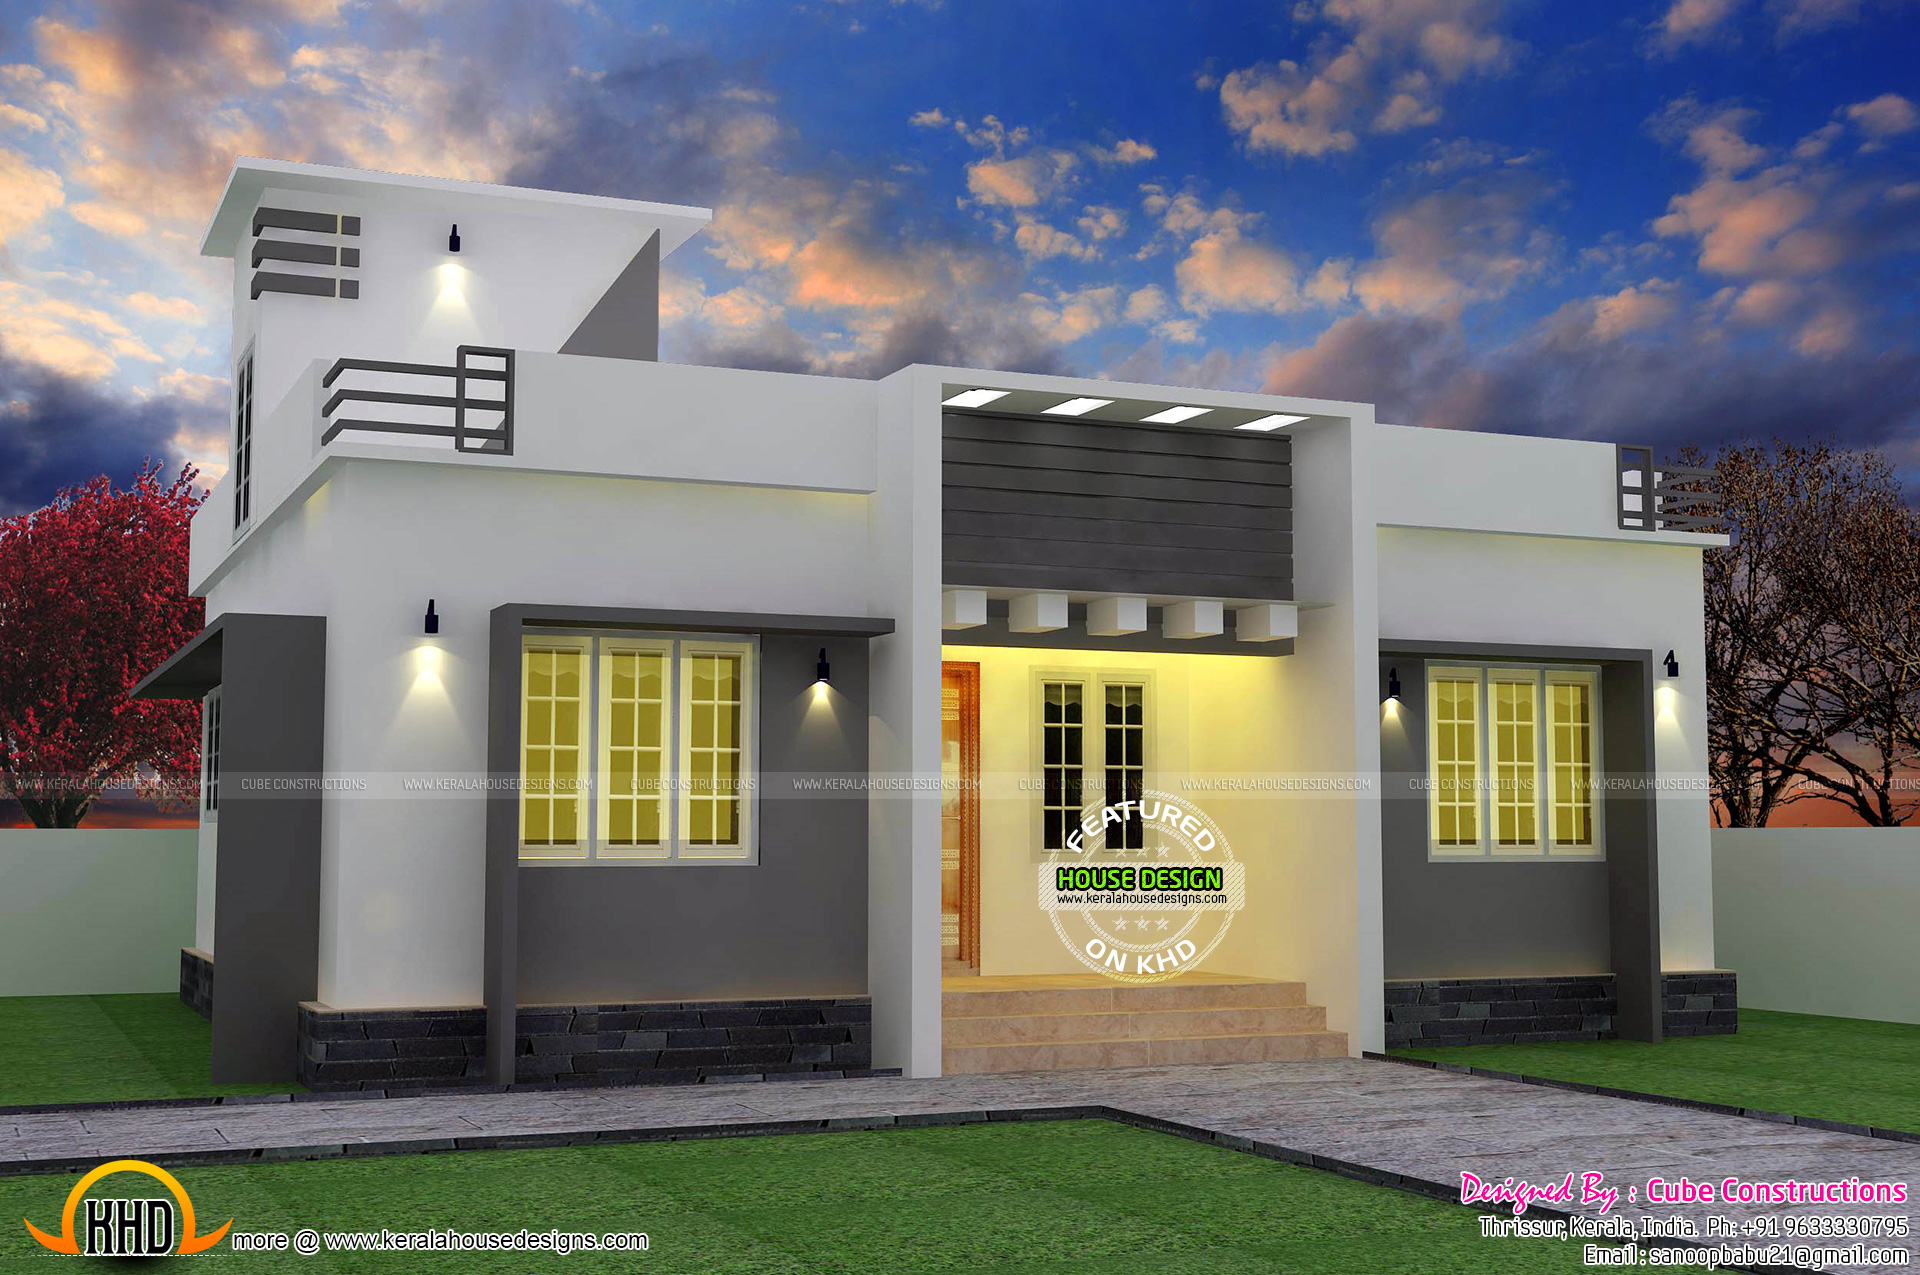 Flat Roof Single Floor Home With Stair Room Kerala Home Design | Stair Room Front Design | 3Rd Floor | Residential | 100 Sq Meter House | Hall | Small Space